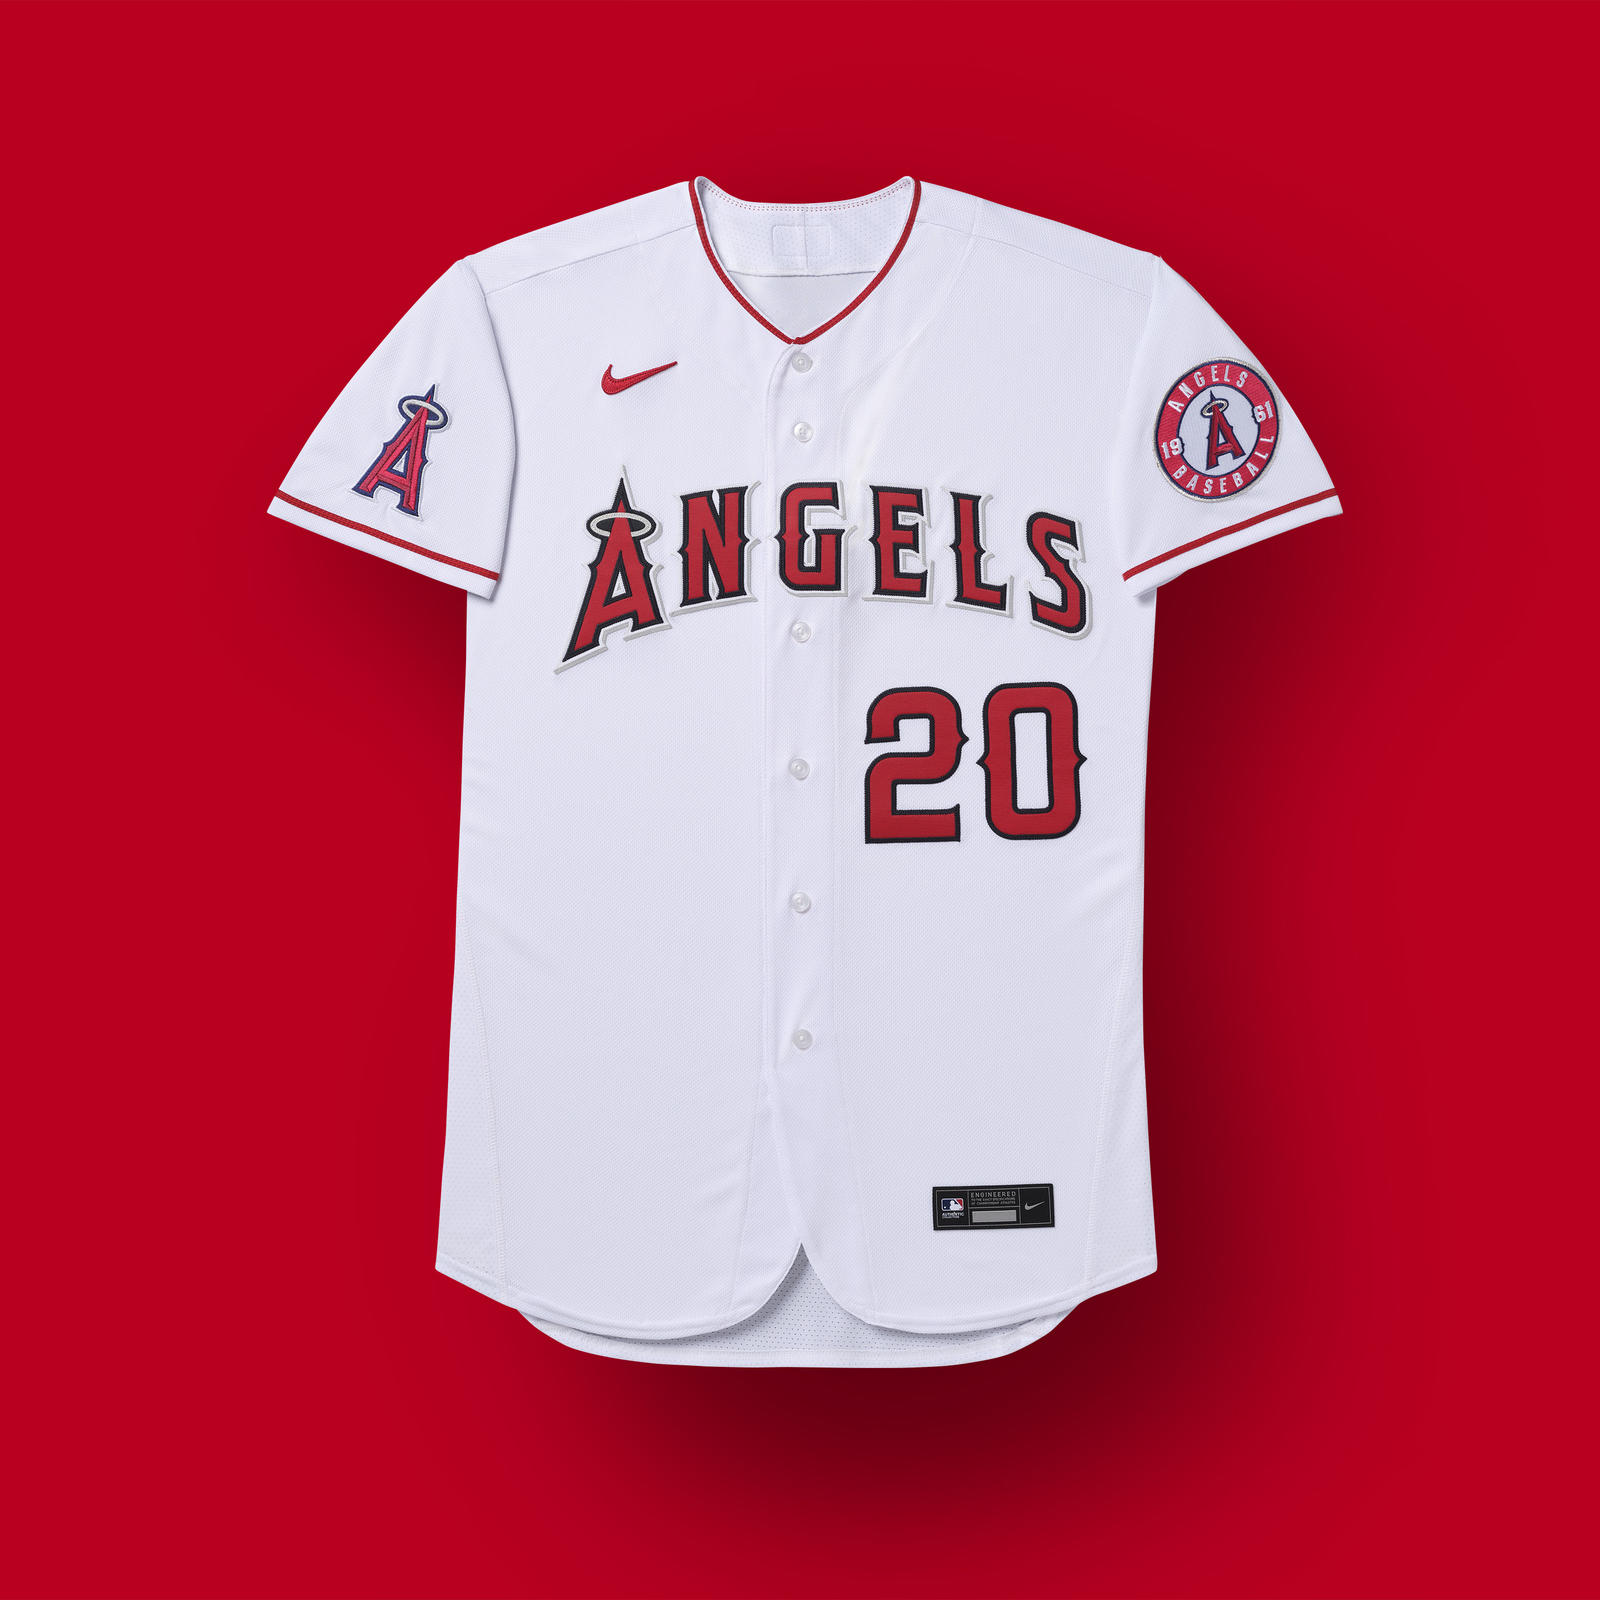 Nike x Major League Baseball Uniforms 2020 Official Images